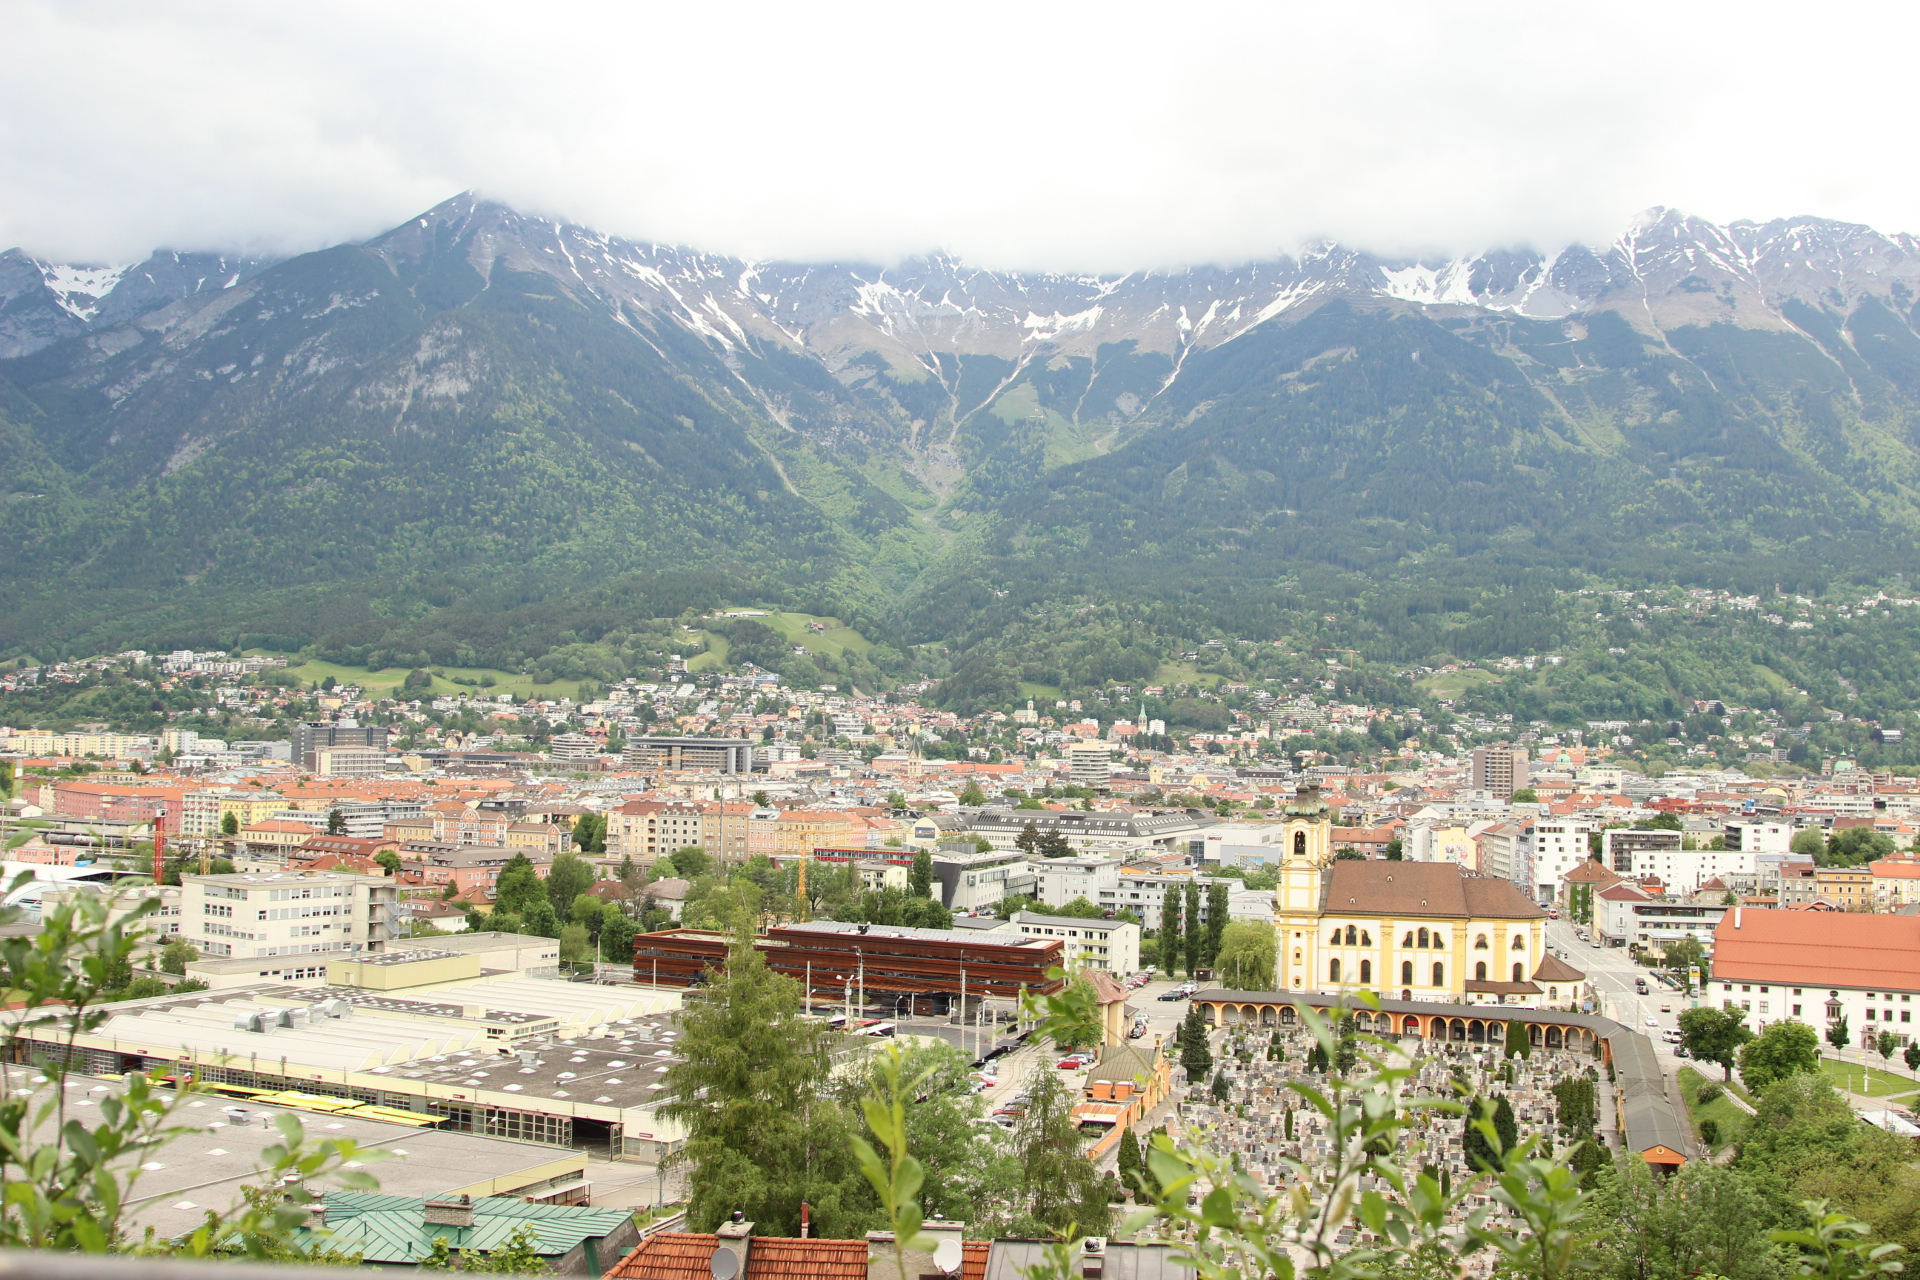 View of Innsbruck from Ambras Castle